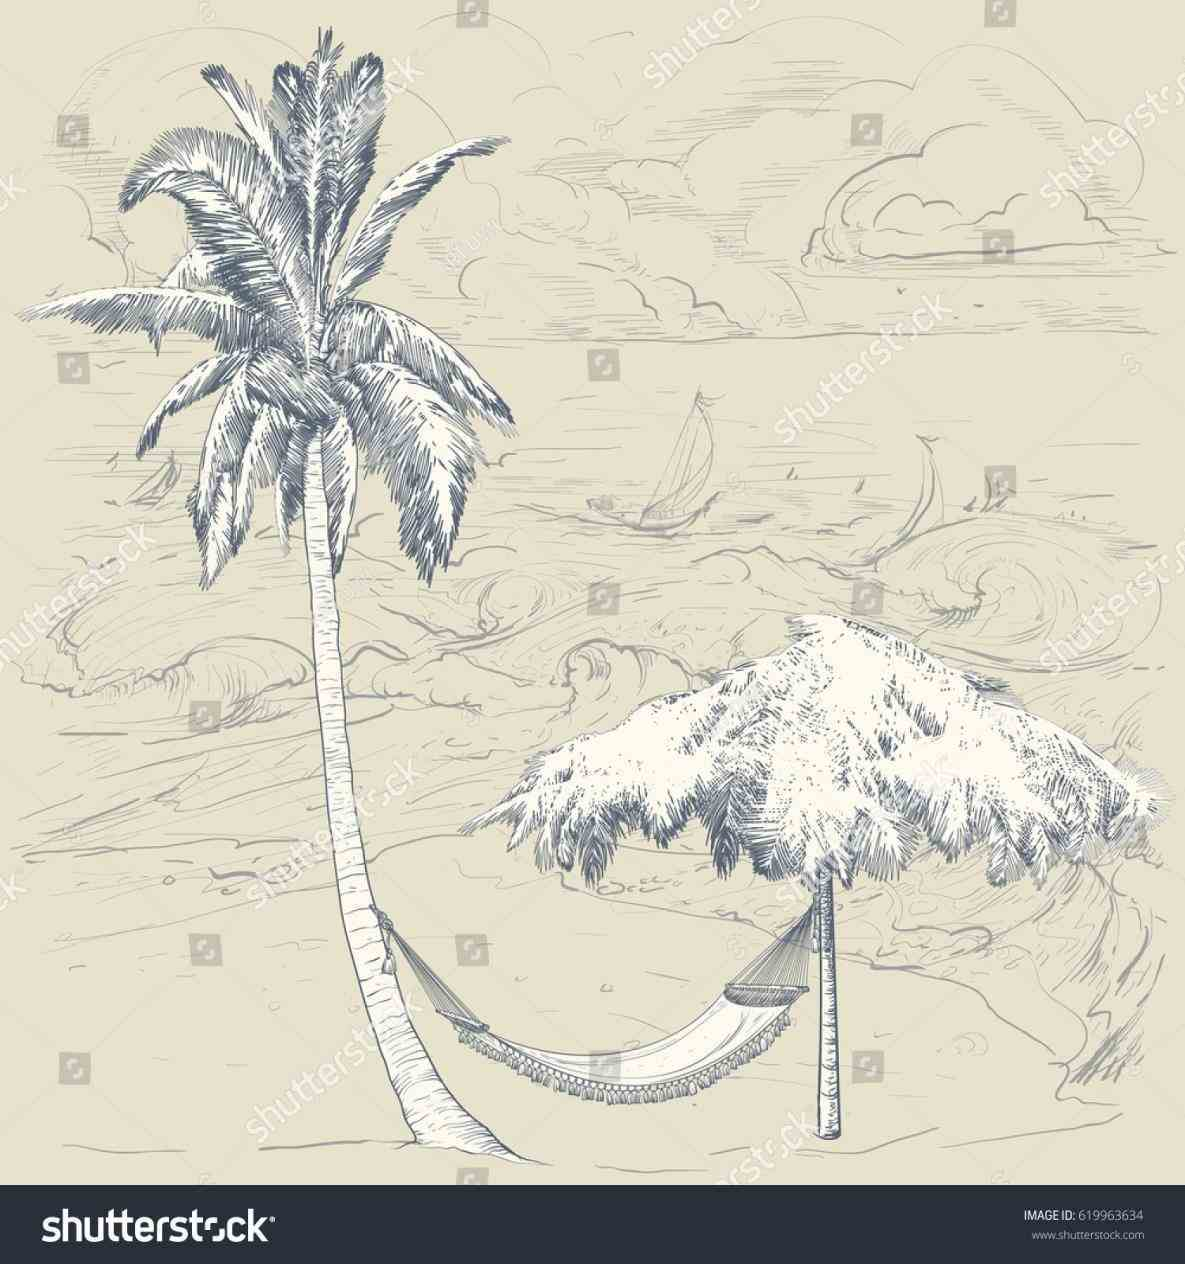 1185x1264 And White Pencil In Color Hammock Palm Tree Hammock Drawing